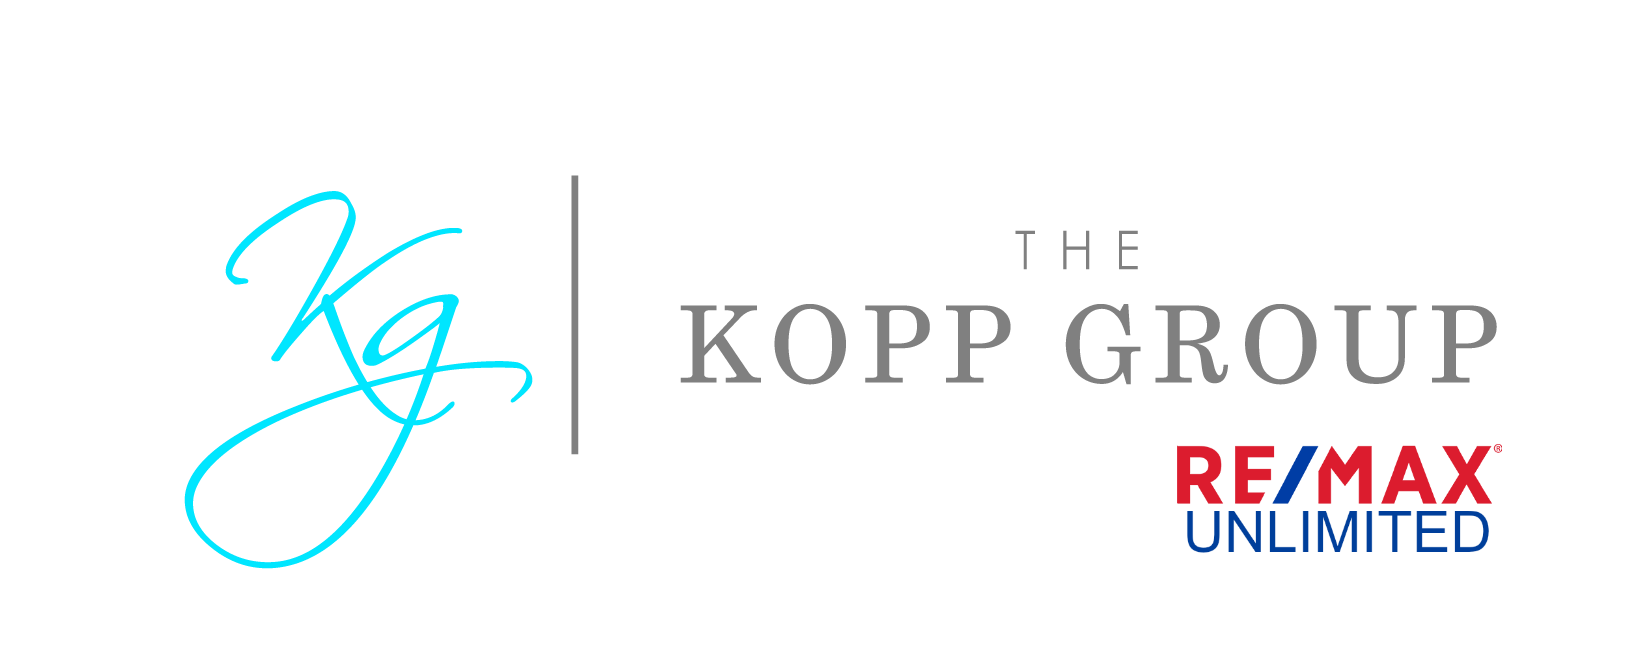 The Kopp Group